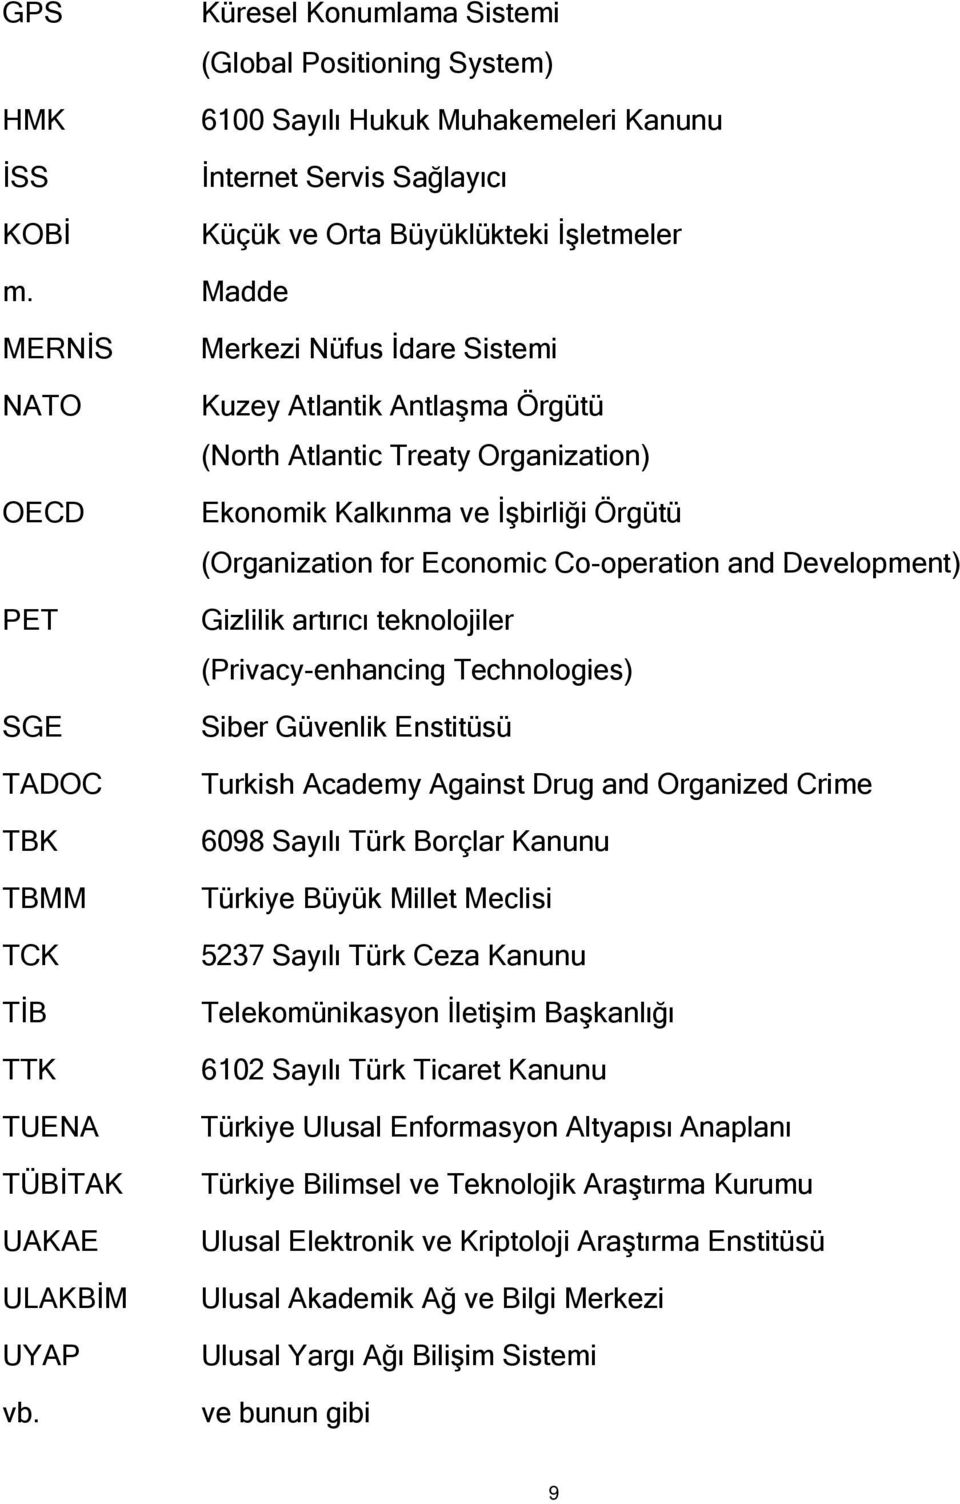 Merkezi Nüfus İdare Sistemi Kuzey Atlantik Antlaşma Örgütü (North Atlantic Treaty Organization) Ekonomik Kalkınma ve İşbirliği Örgütü (Organization for Economic Co-operation and Development) Gizlilik